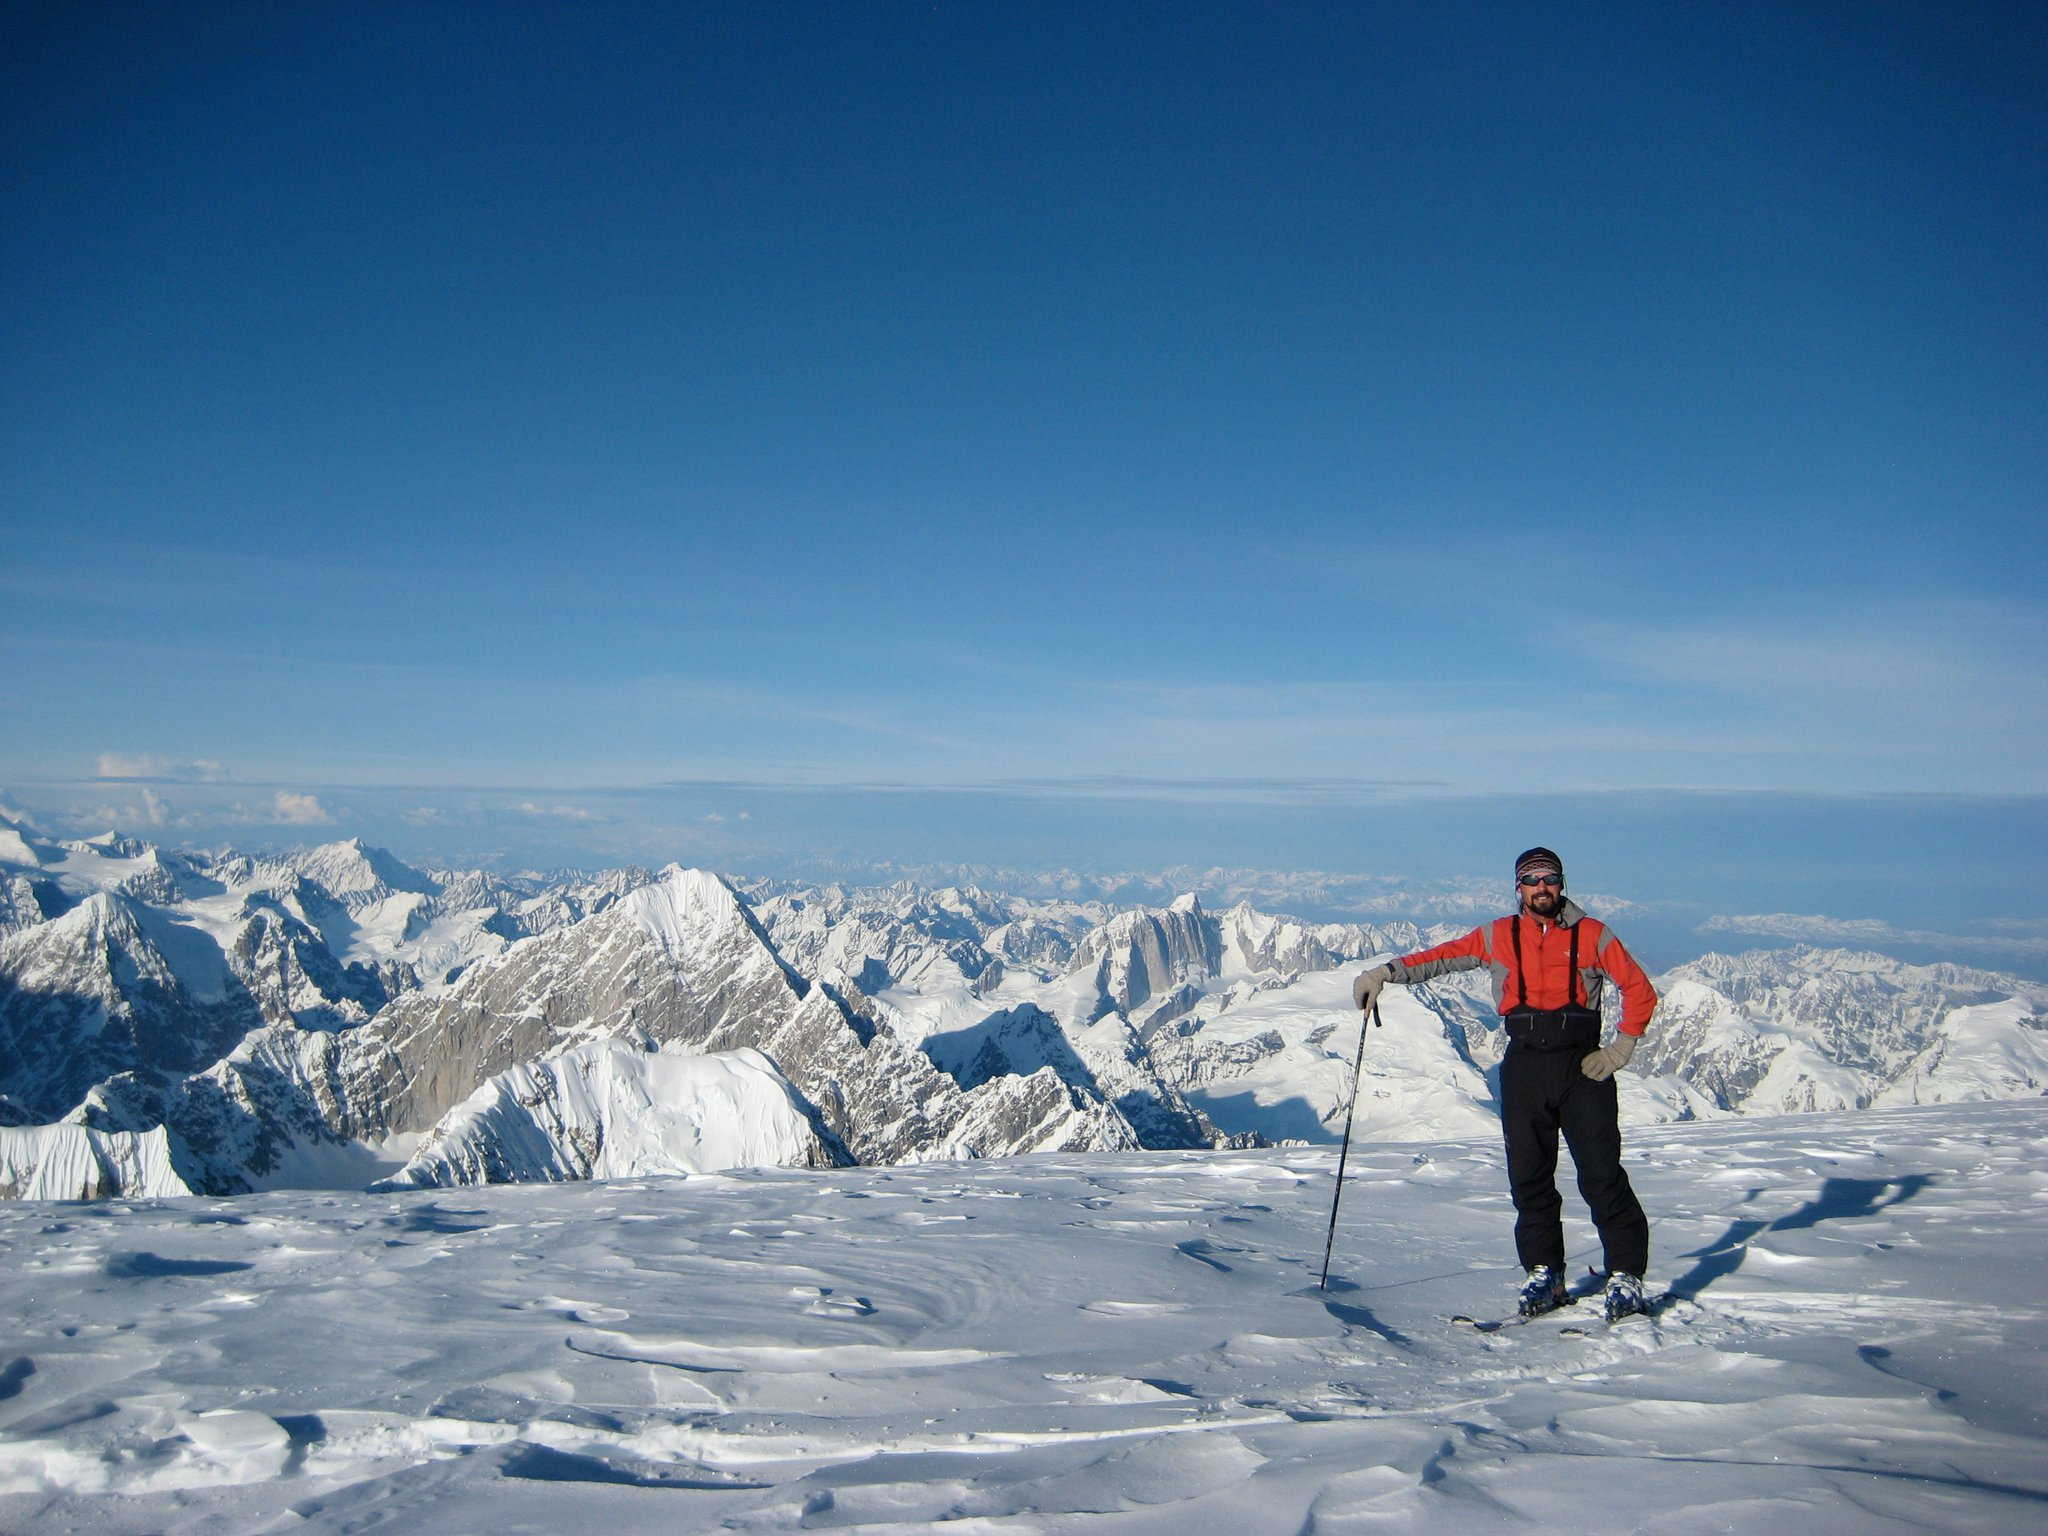 Standing on a saddle of Mount Hunter, Alaska looking towards Mount Huntington (largest peak in the background) and Mooses Tooth in the distance